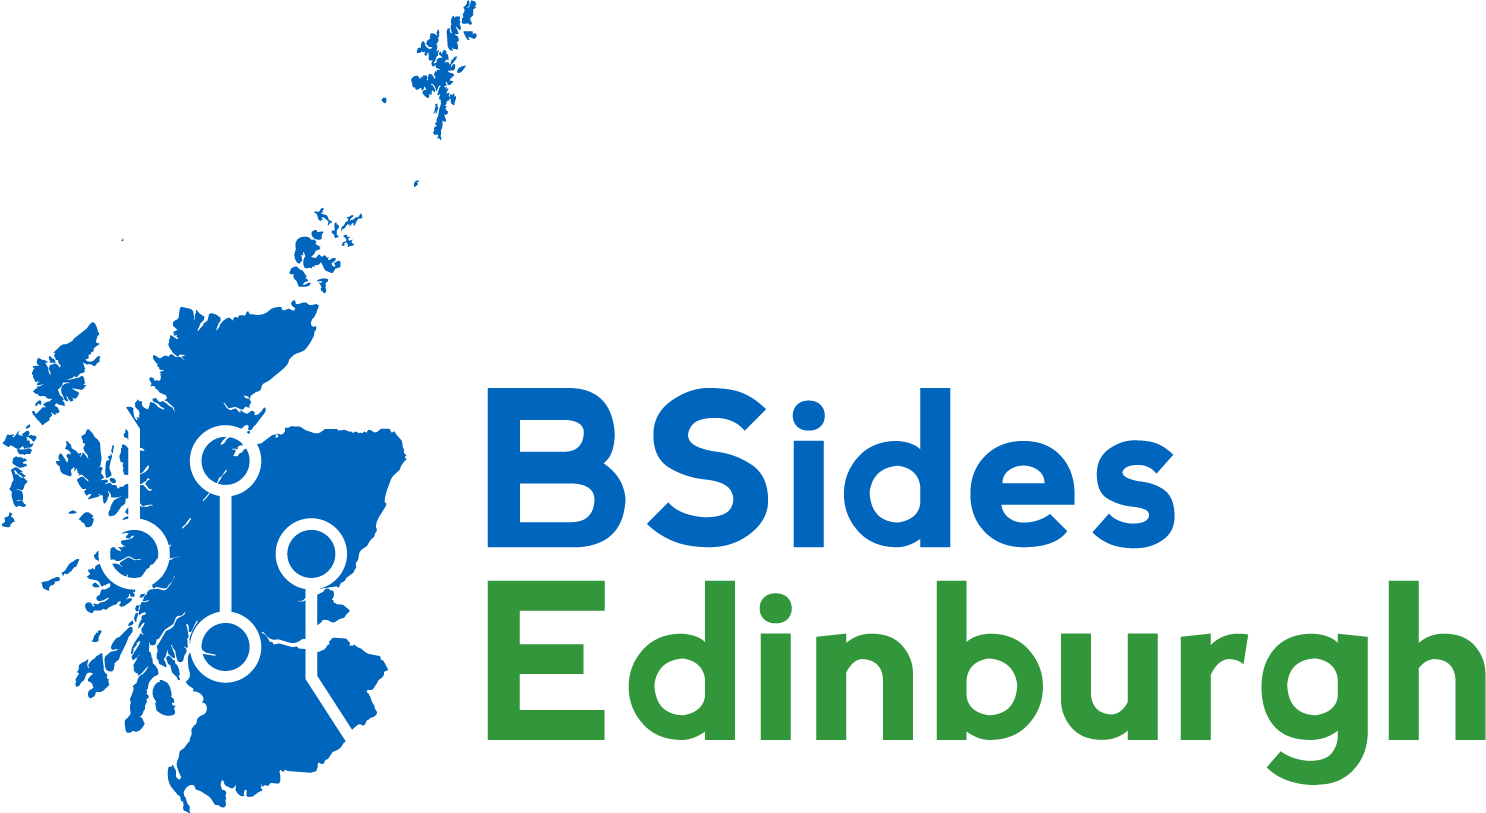 8 days until BSides Edinburgh 2019